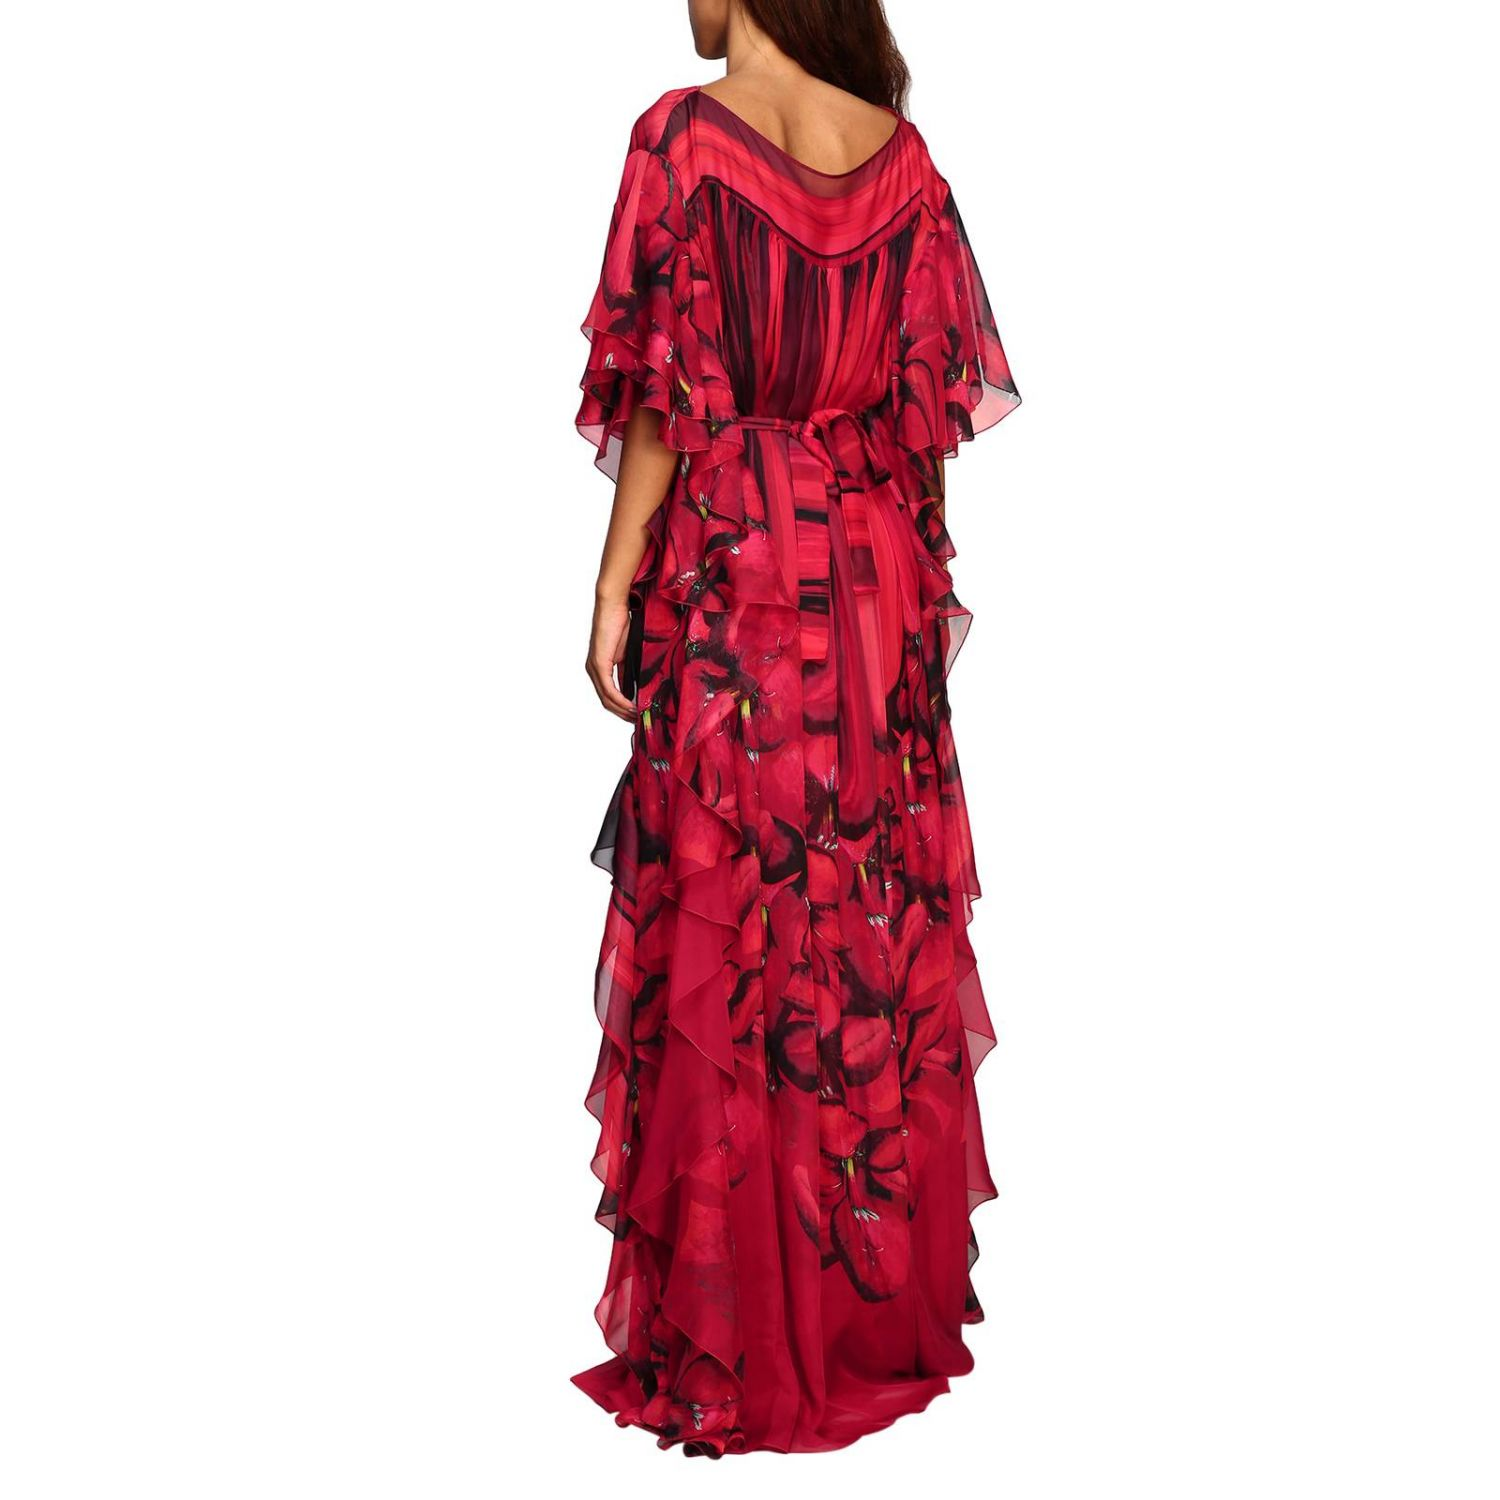 Dress Alberta Ferretti: Alberta Ferretti long dress with floral pattern with rouches red 2